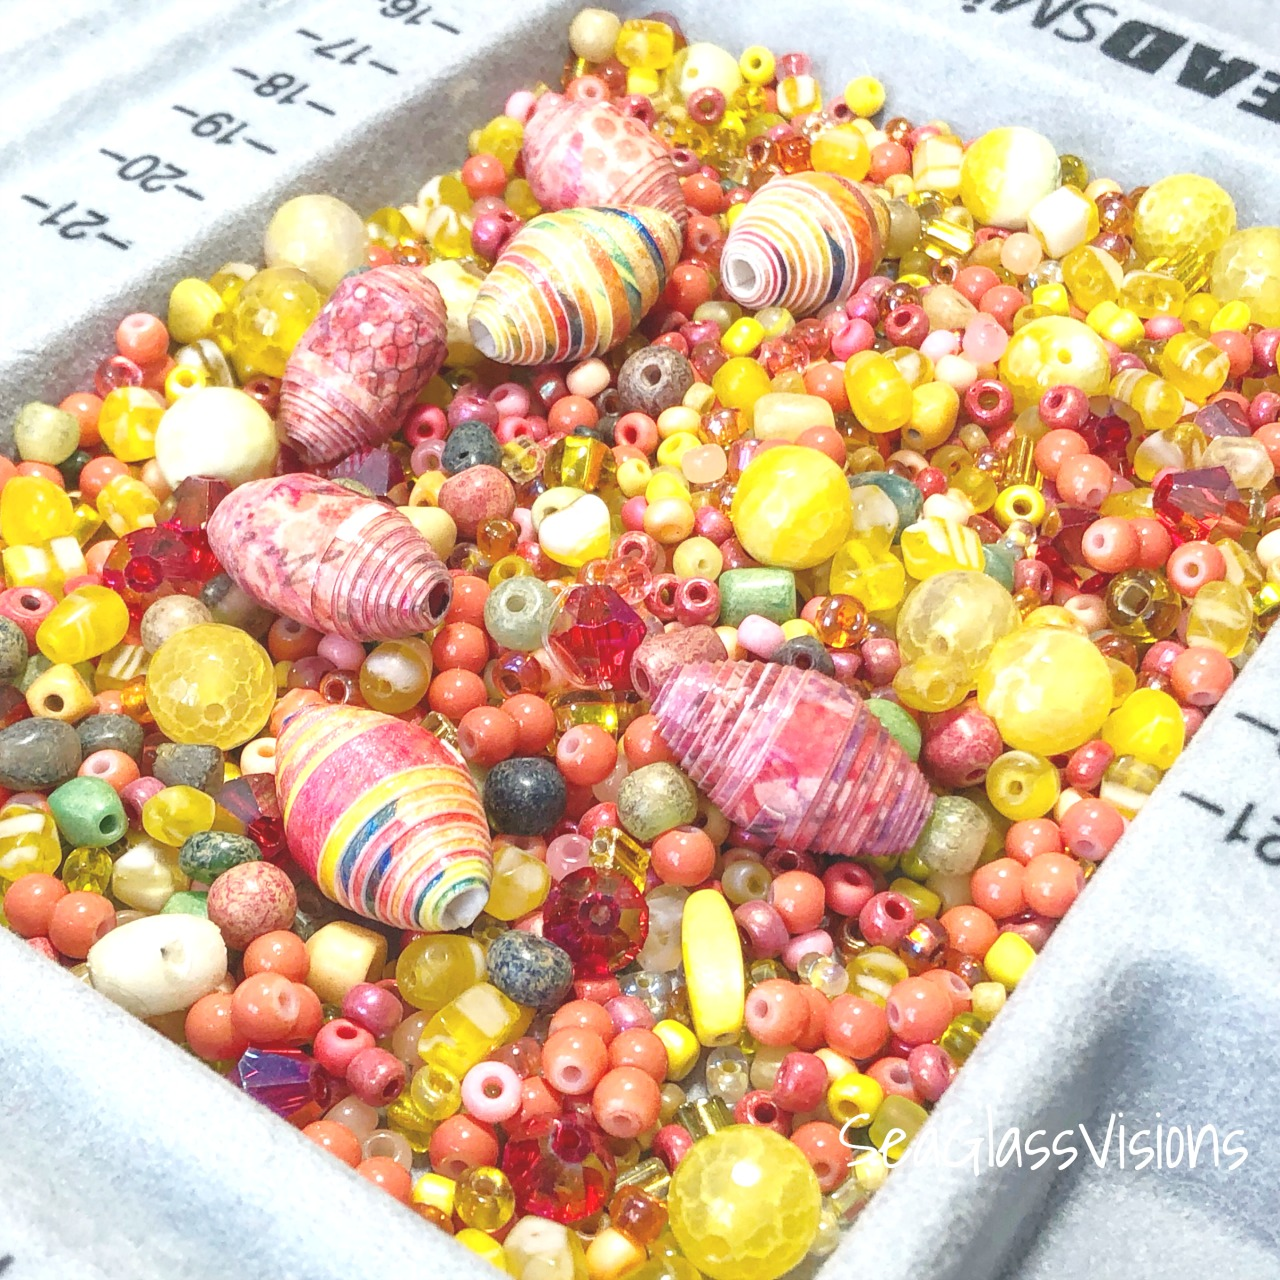 Colorful Bead Mix including Yellow & Pink Sea Glass and Handmade Paper Beads by Sea Glass Visions